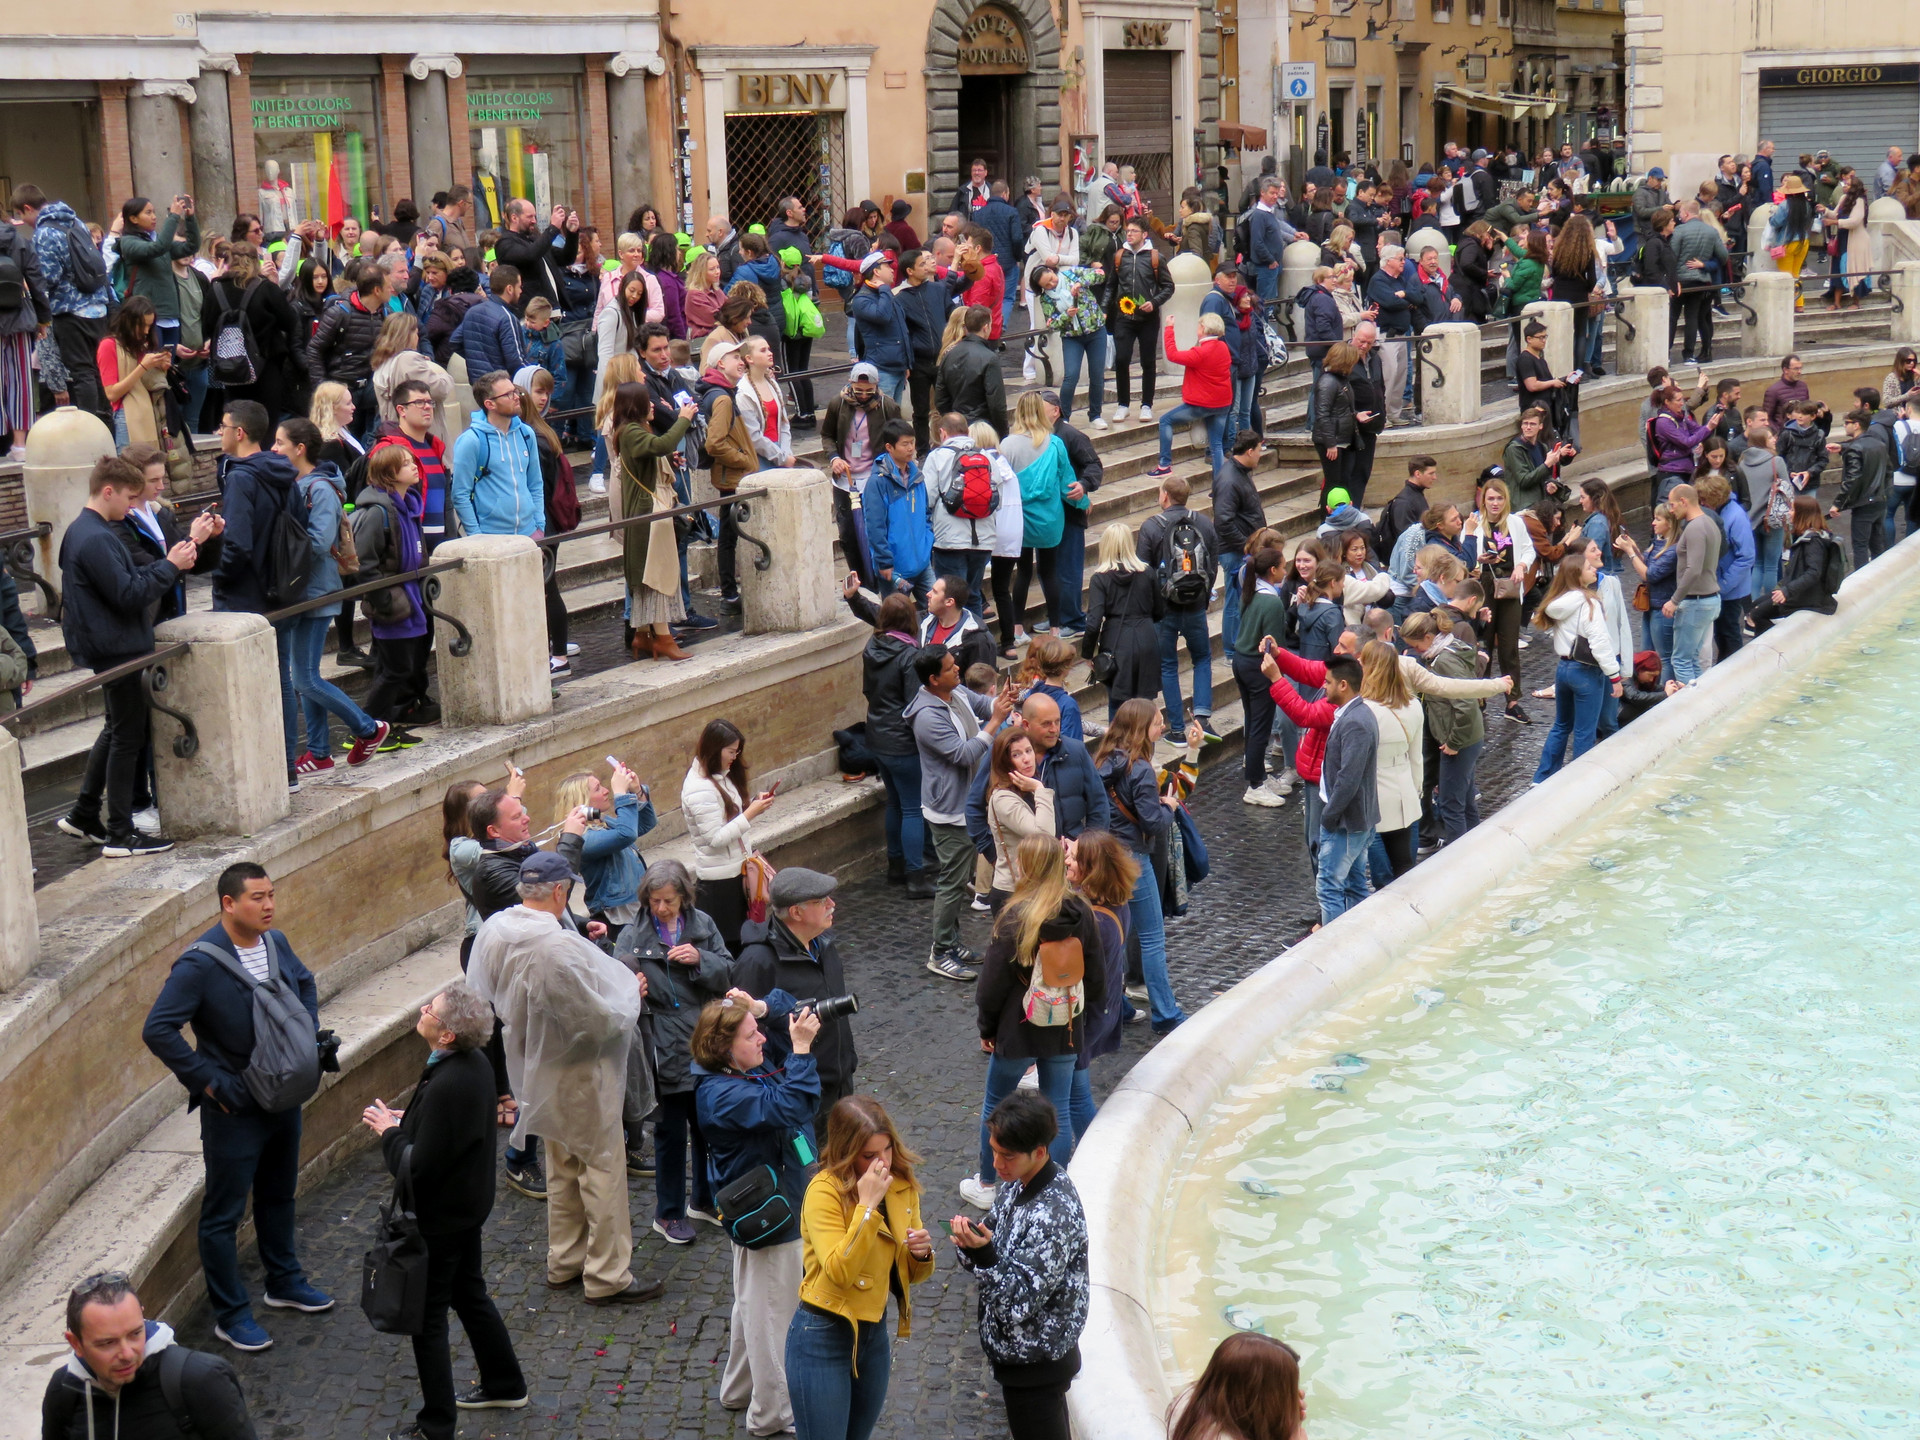 Tourists at the Trevi Fountain, Rome